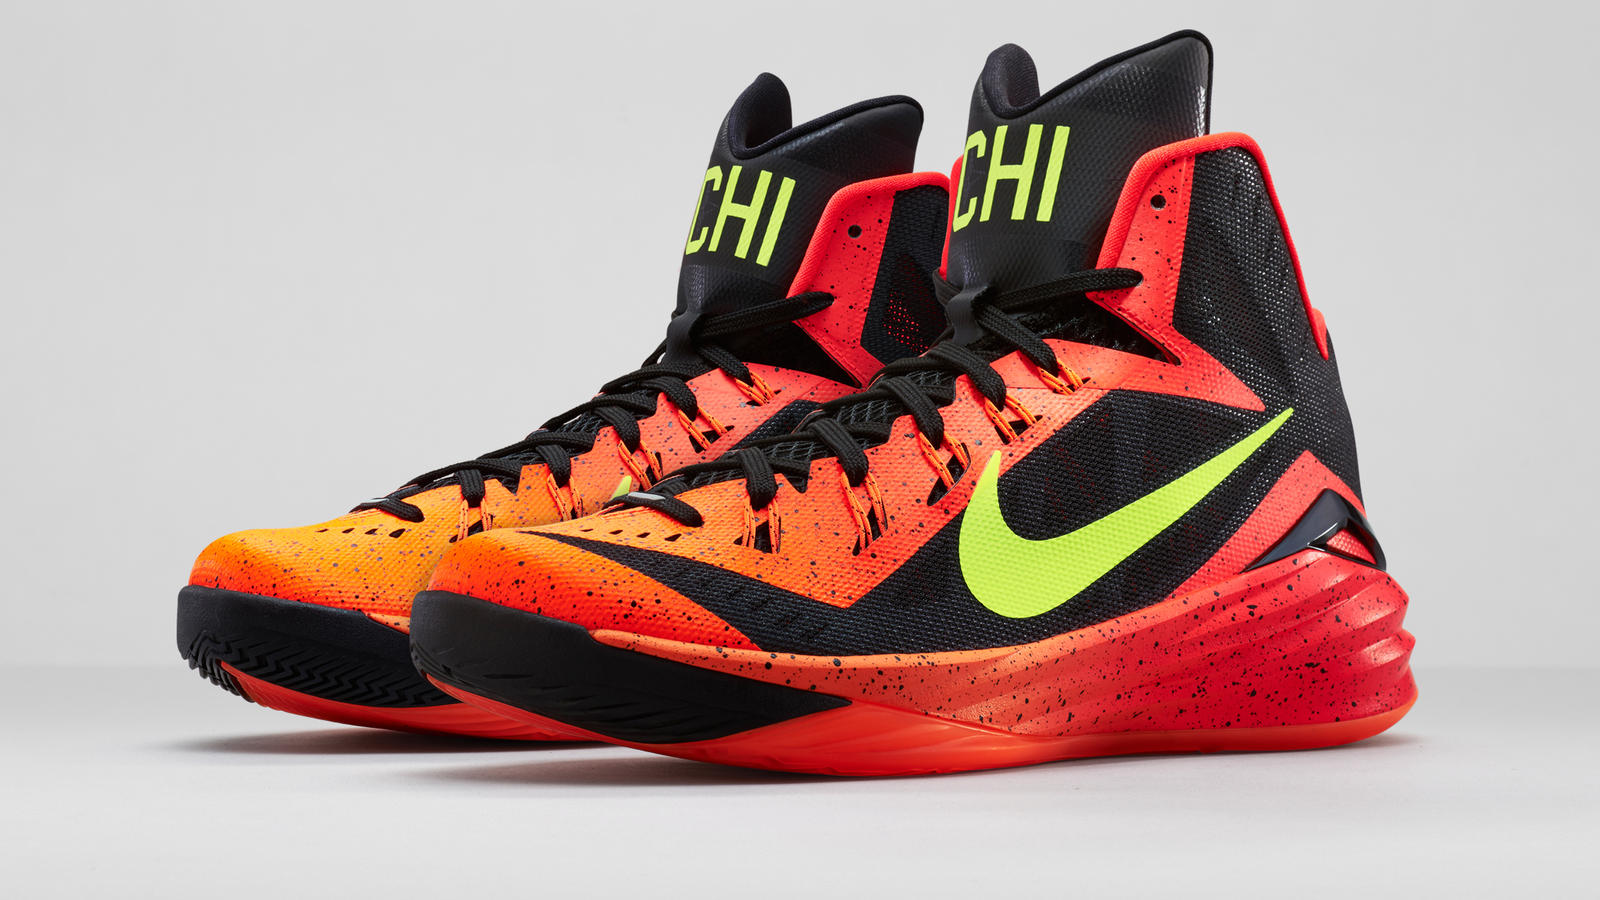 Nike Hyperdunk 2014 City Pack Takes the Court at World Basketball ... 3c6ced9e9e